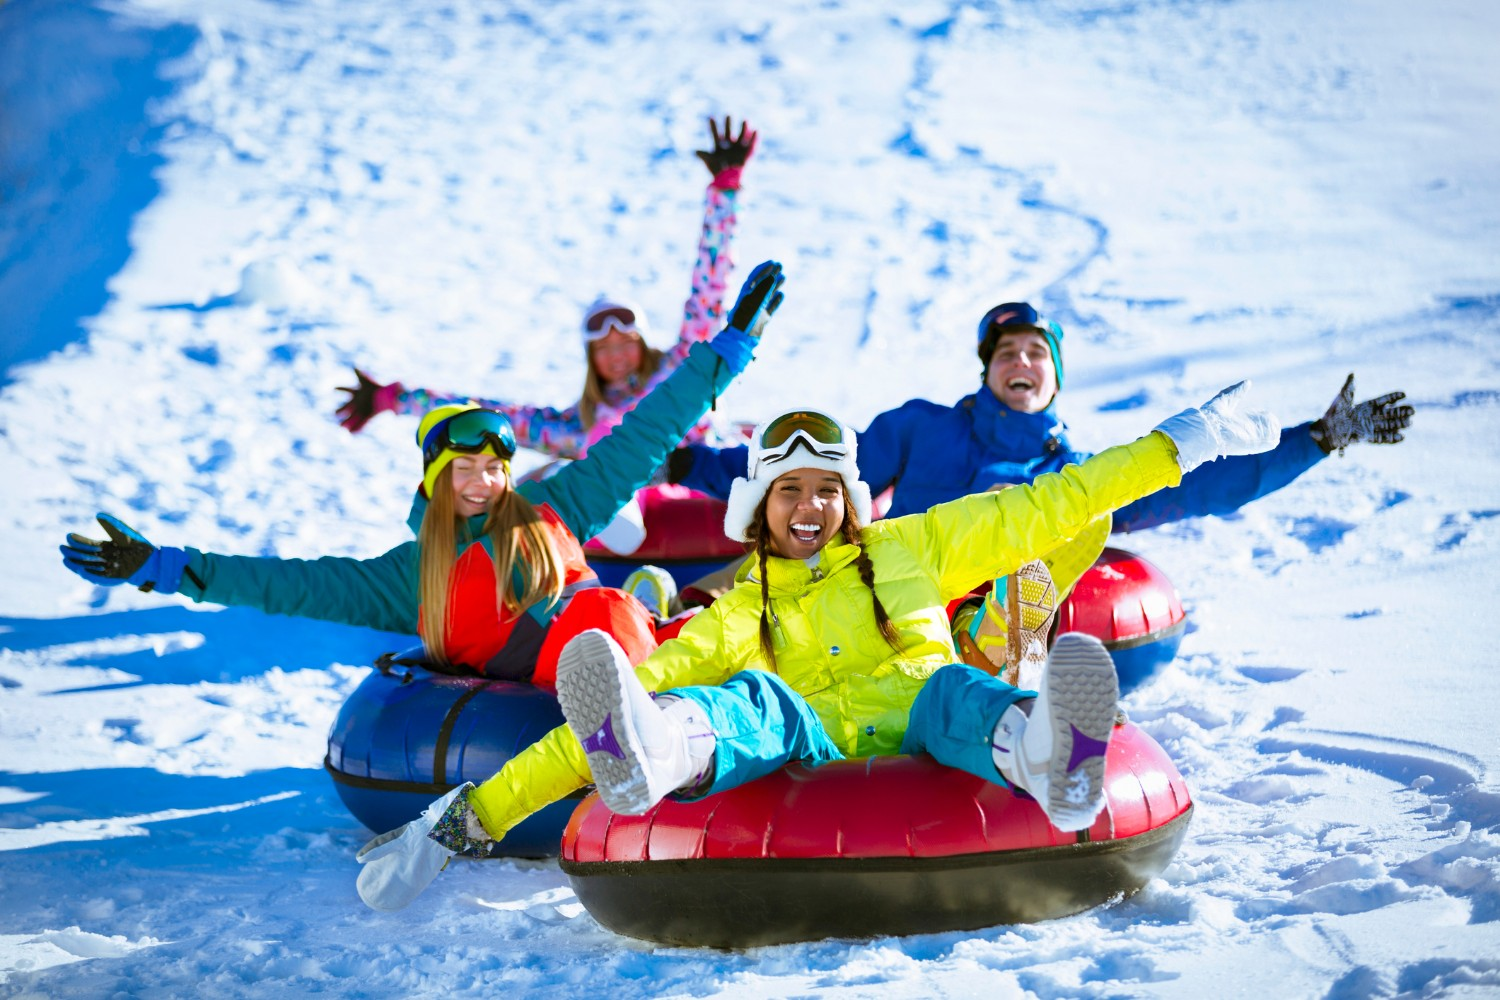 Happy people snow tubing down a hill